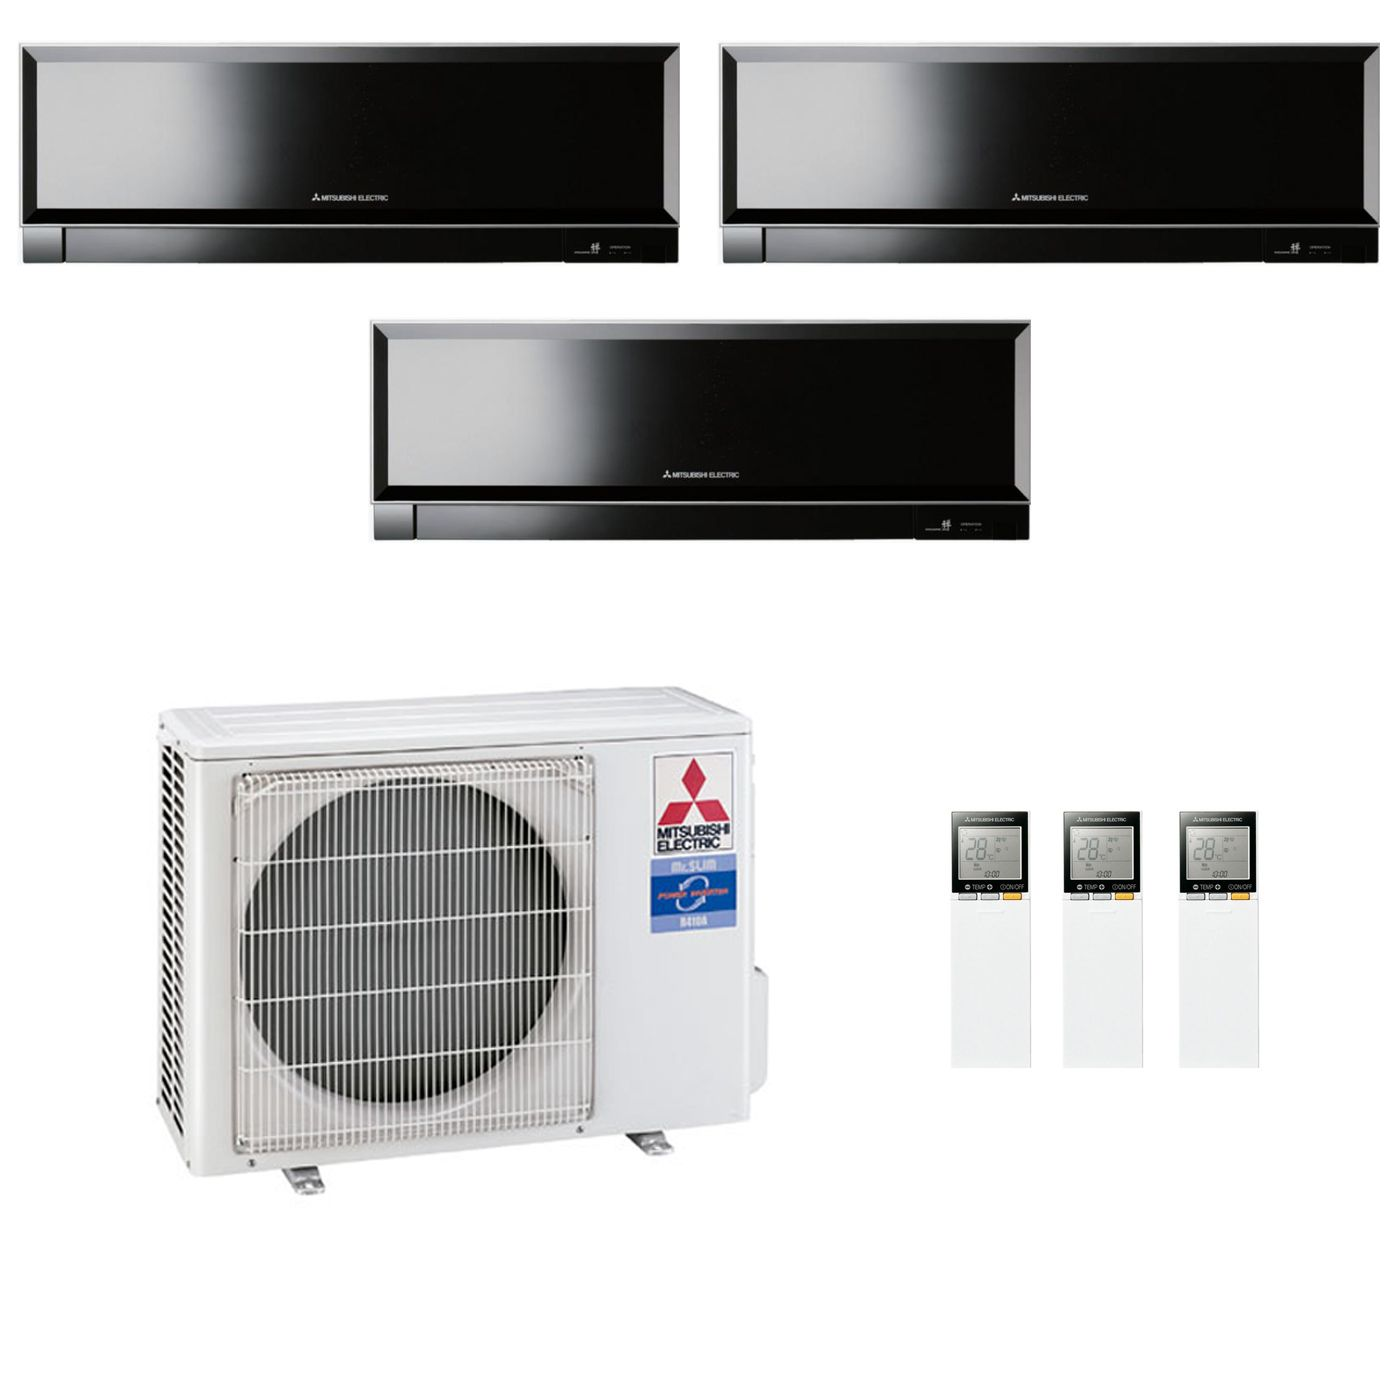 external forum with resized wall behaving community mitsubishi mini very mechanicals split differently ac thermosta